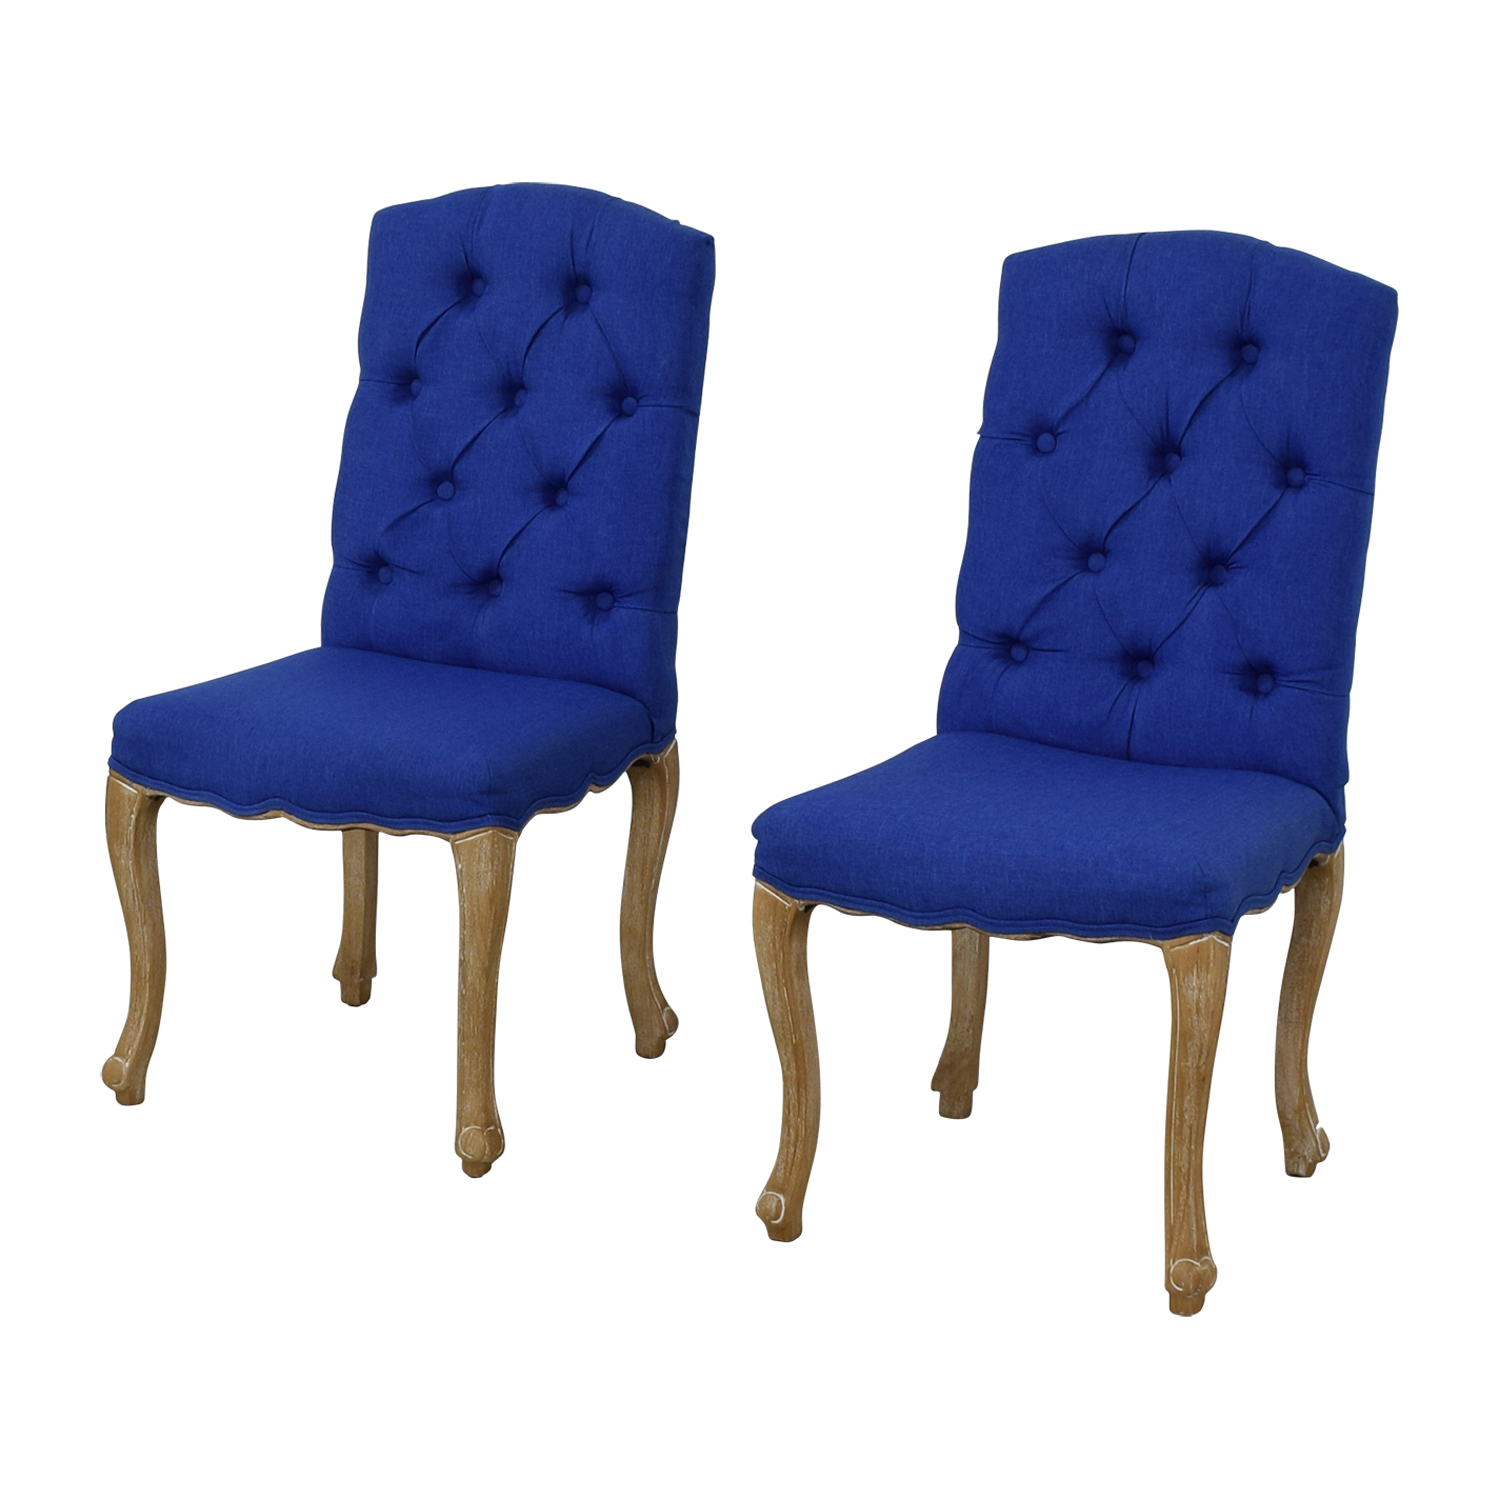 Royal Blue Chair Royal Blue Chairs